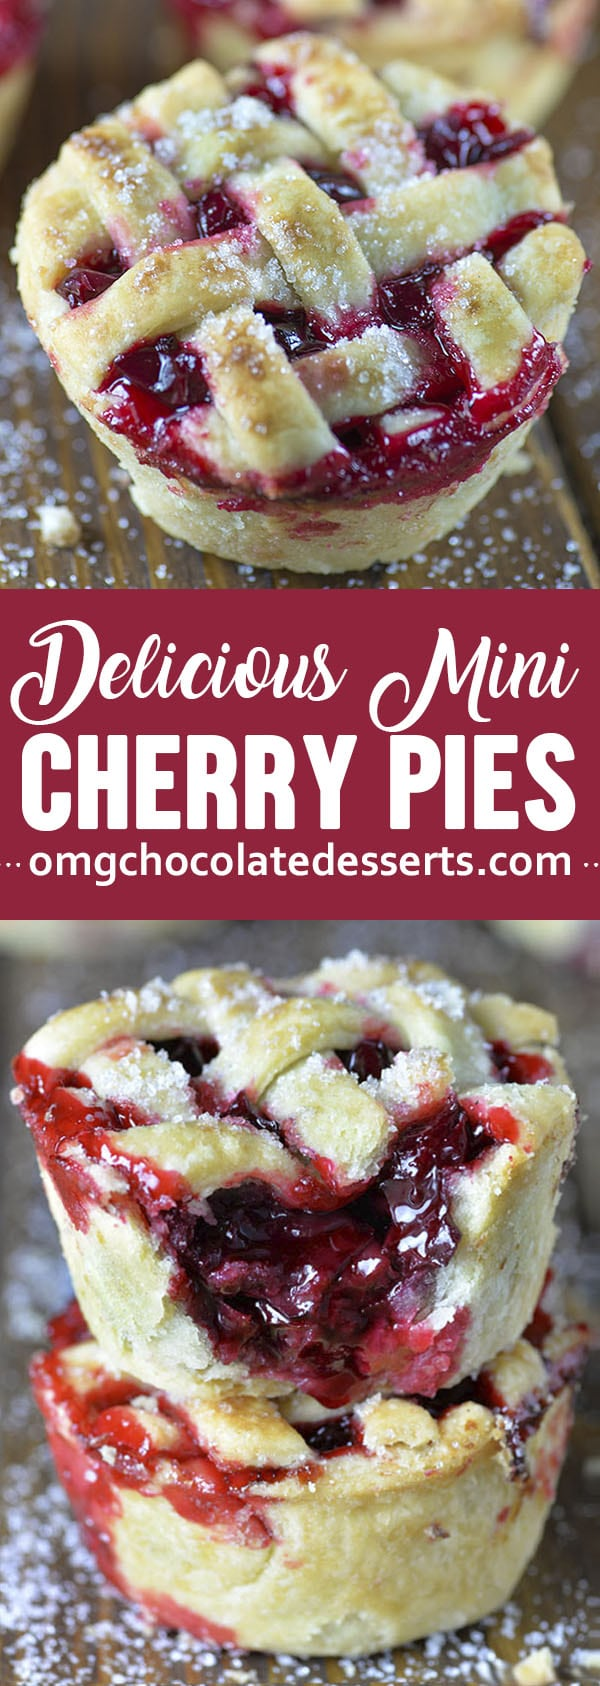 These mini cherry pies are baked in a muffin tin so they're easy to make and even easier to take to a party, potluck, or picnic.